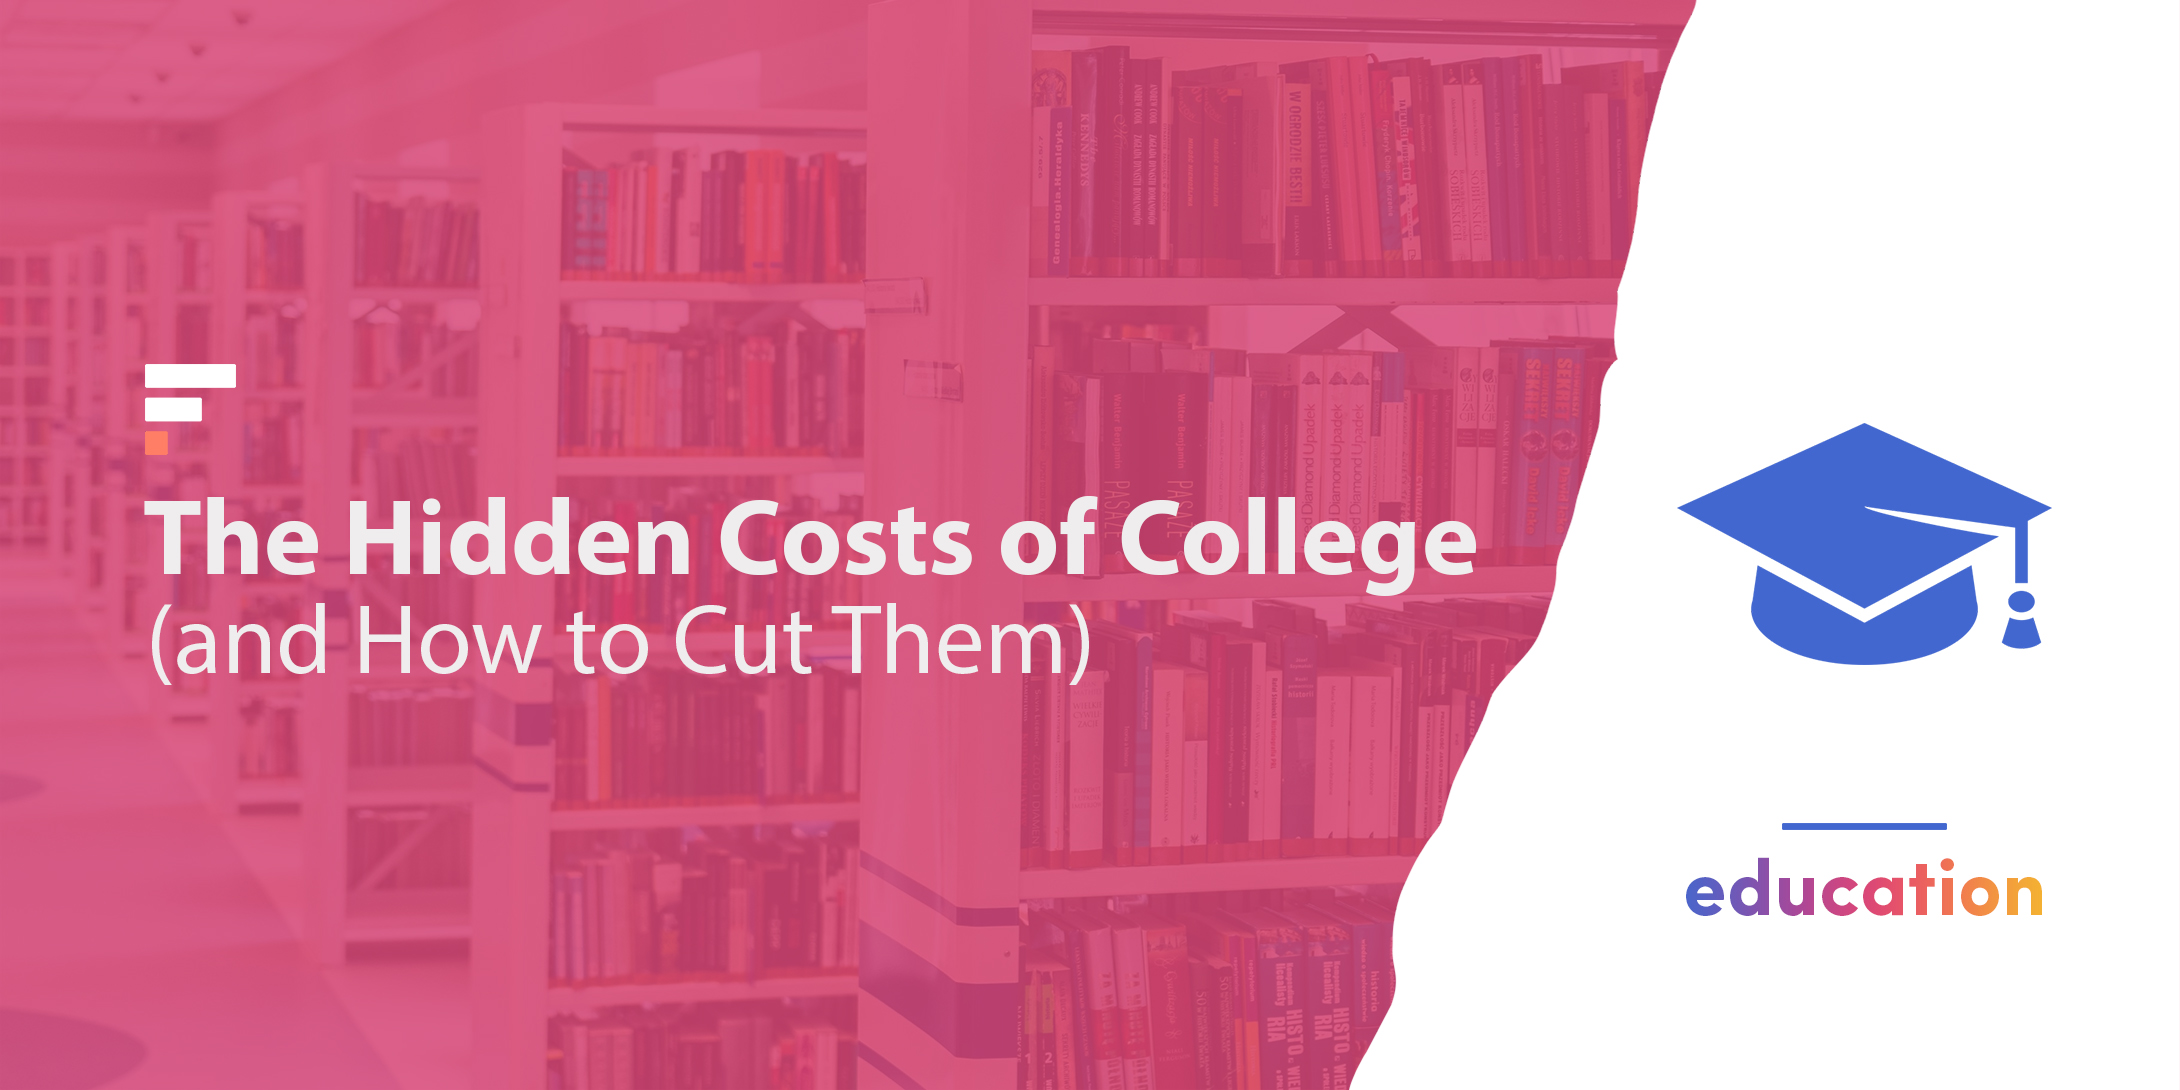 The Hidden Costs of College (and How to Cut Them)